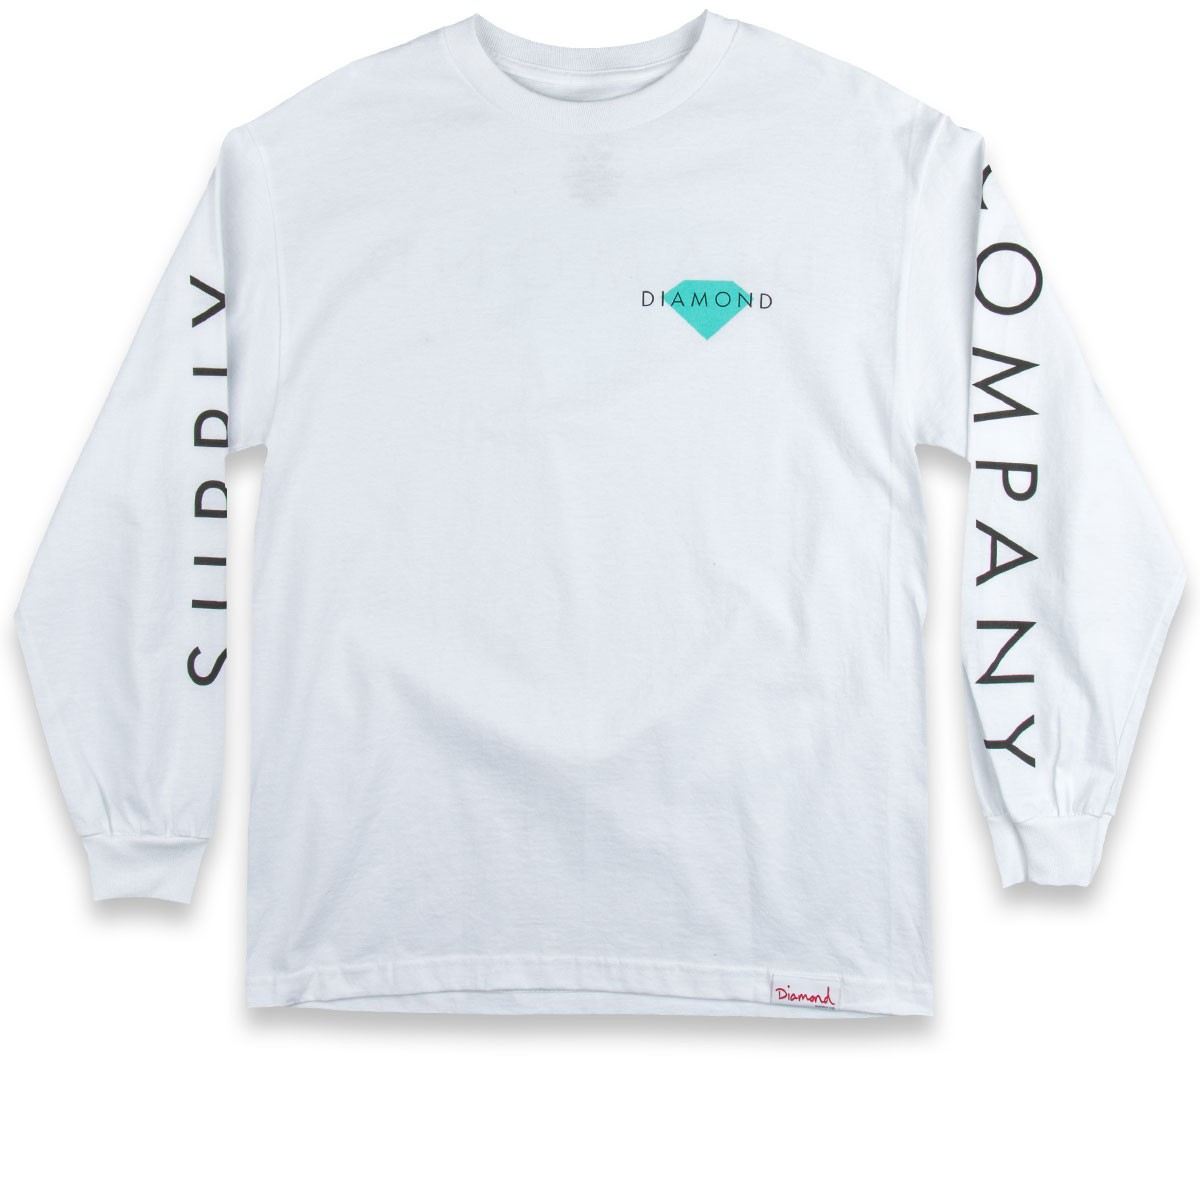 White t shirt company - Diamond Supply Co Diamond Solid Long Sleeve T Shirt White